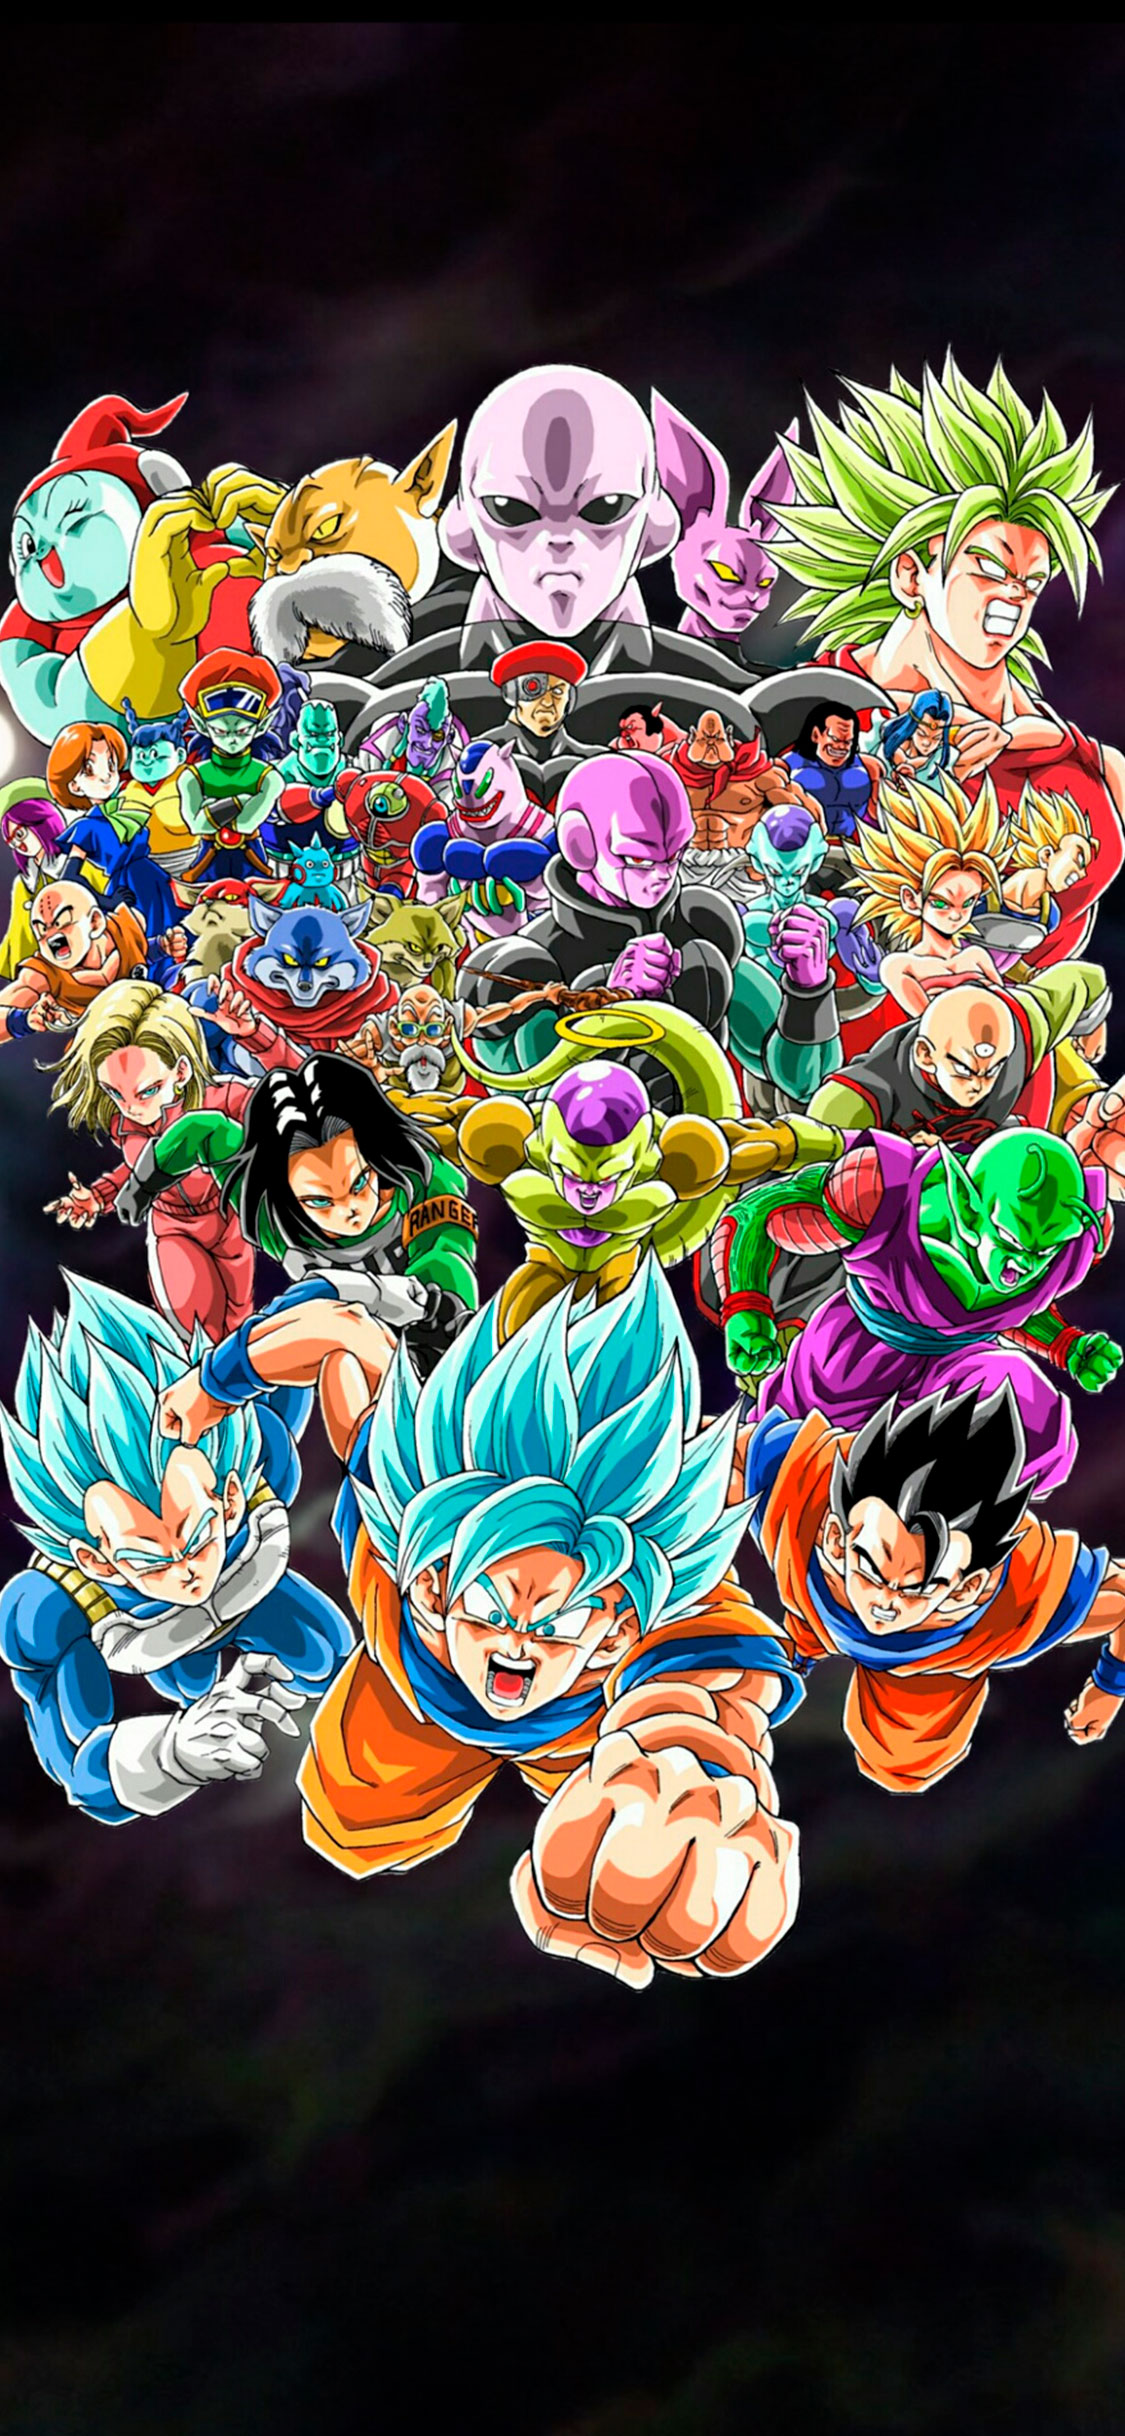 iPhone wallpaper dragon ball characters Fonds d'écran iPhone du 11/05/2018